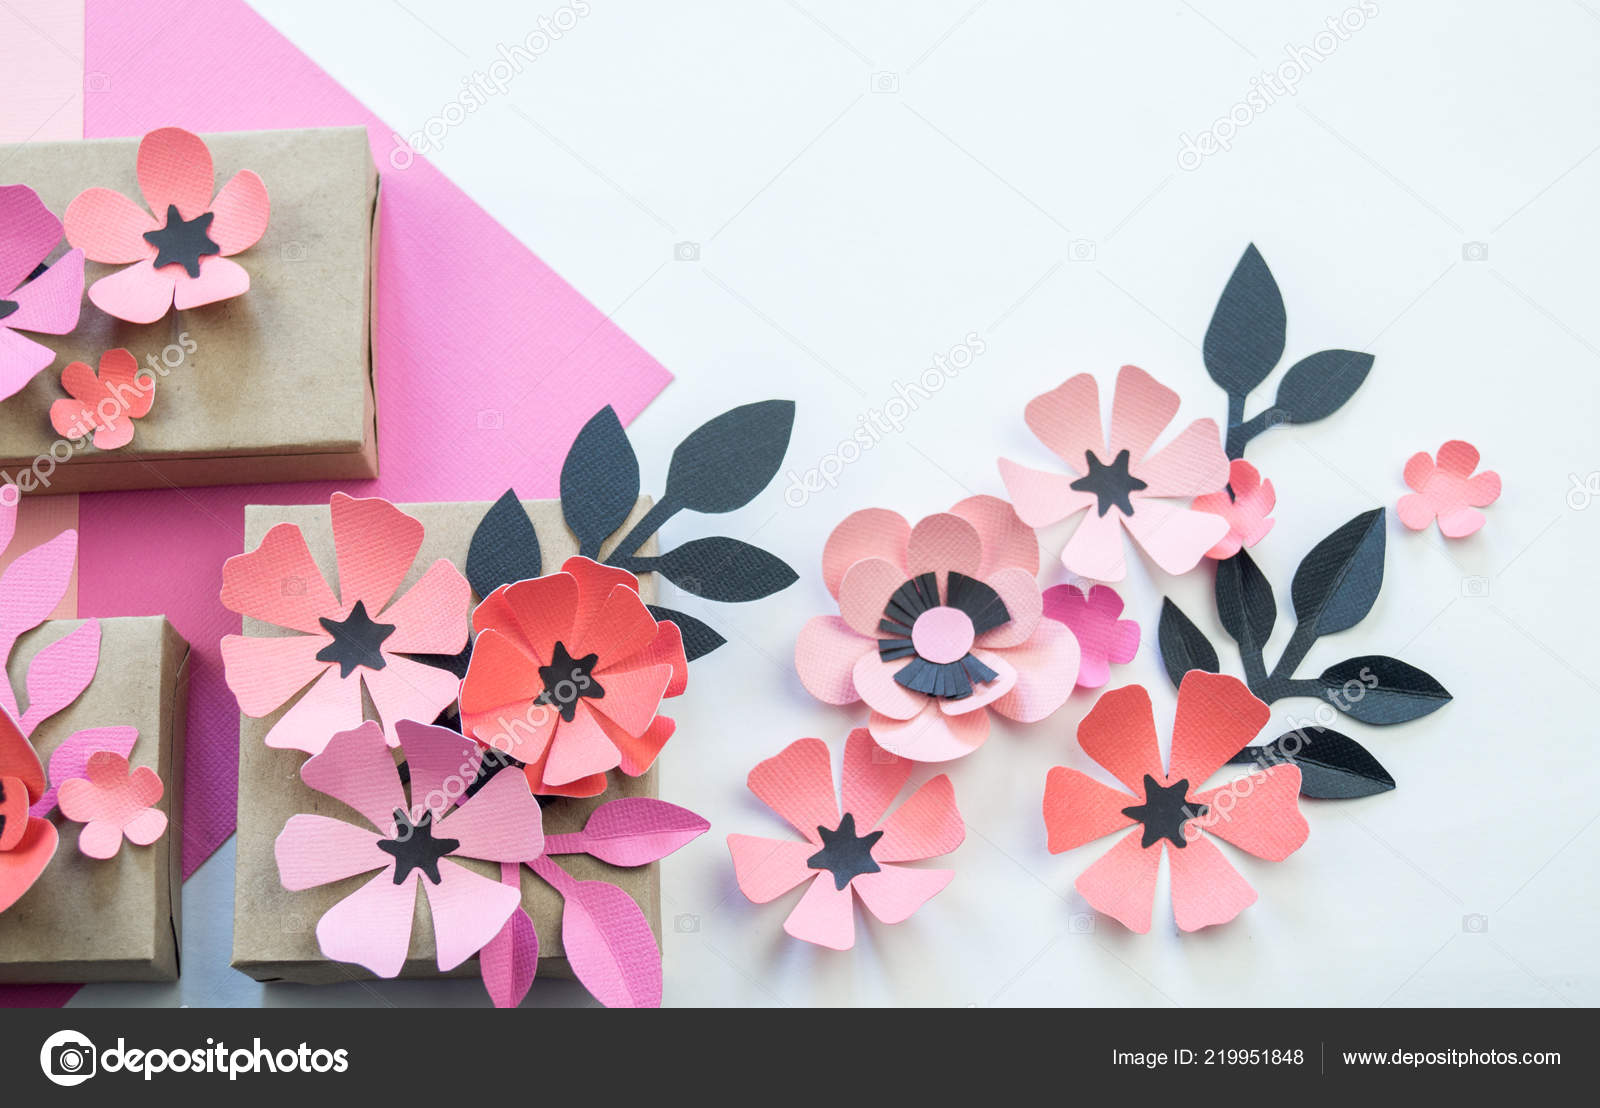 Packing Festive Box Ribbons Flowers Flower Made Paper Favorite Hobby